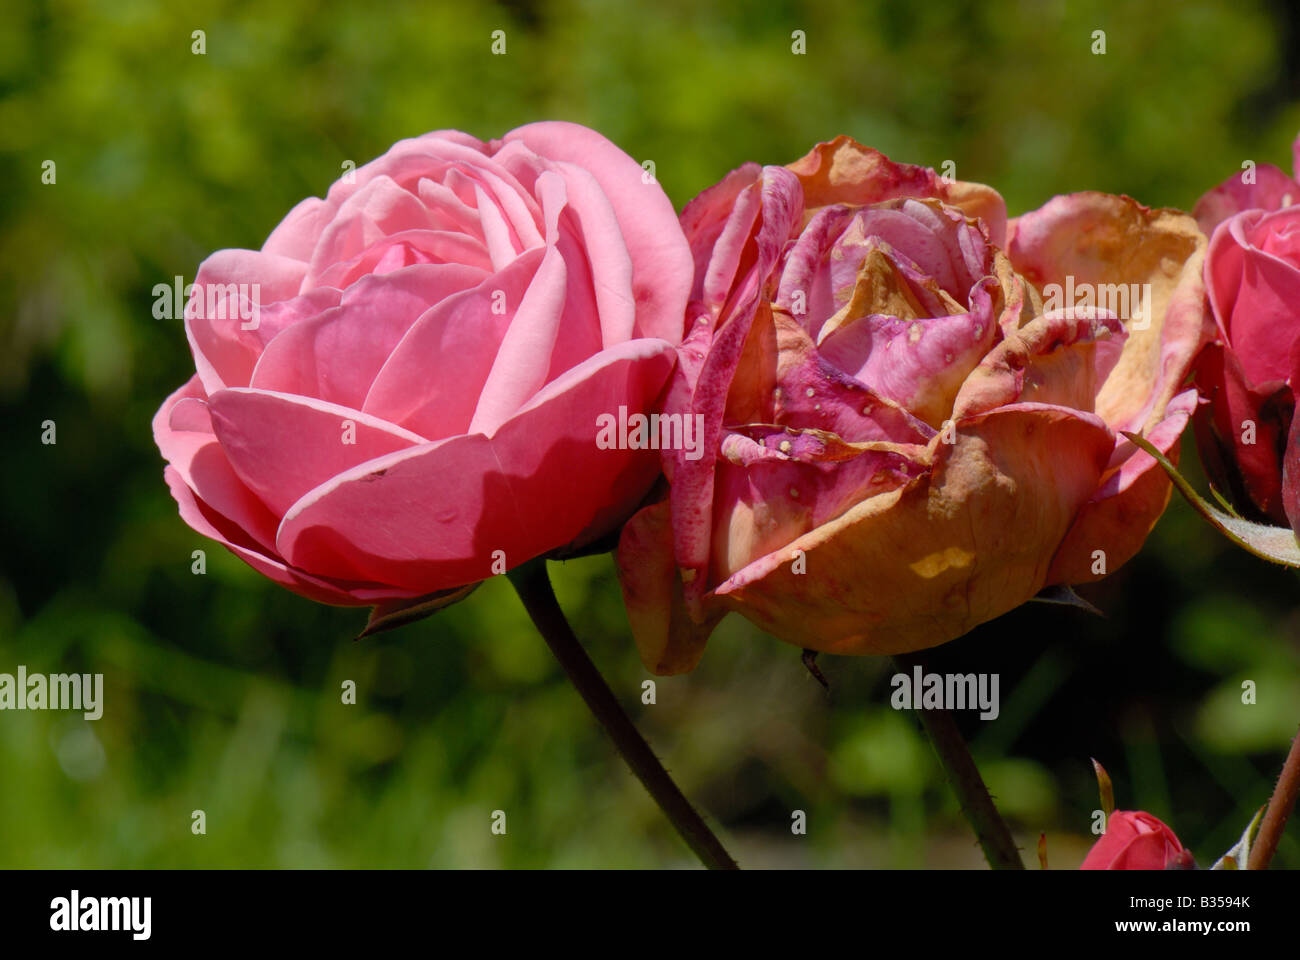 Rose flowers affected by grey mould Botrytis cinerea in damp weather - Stock Image